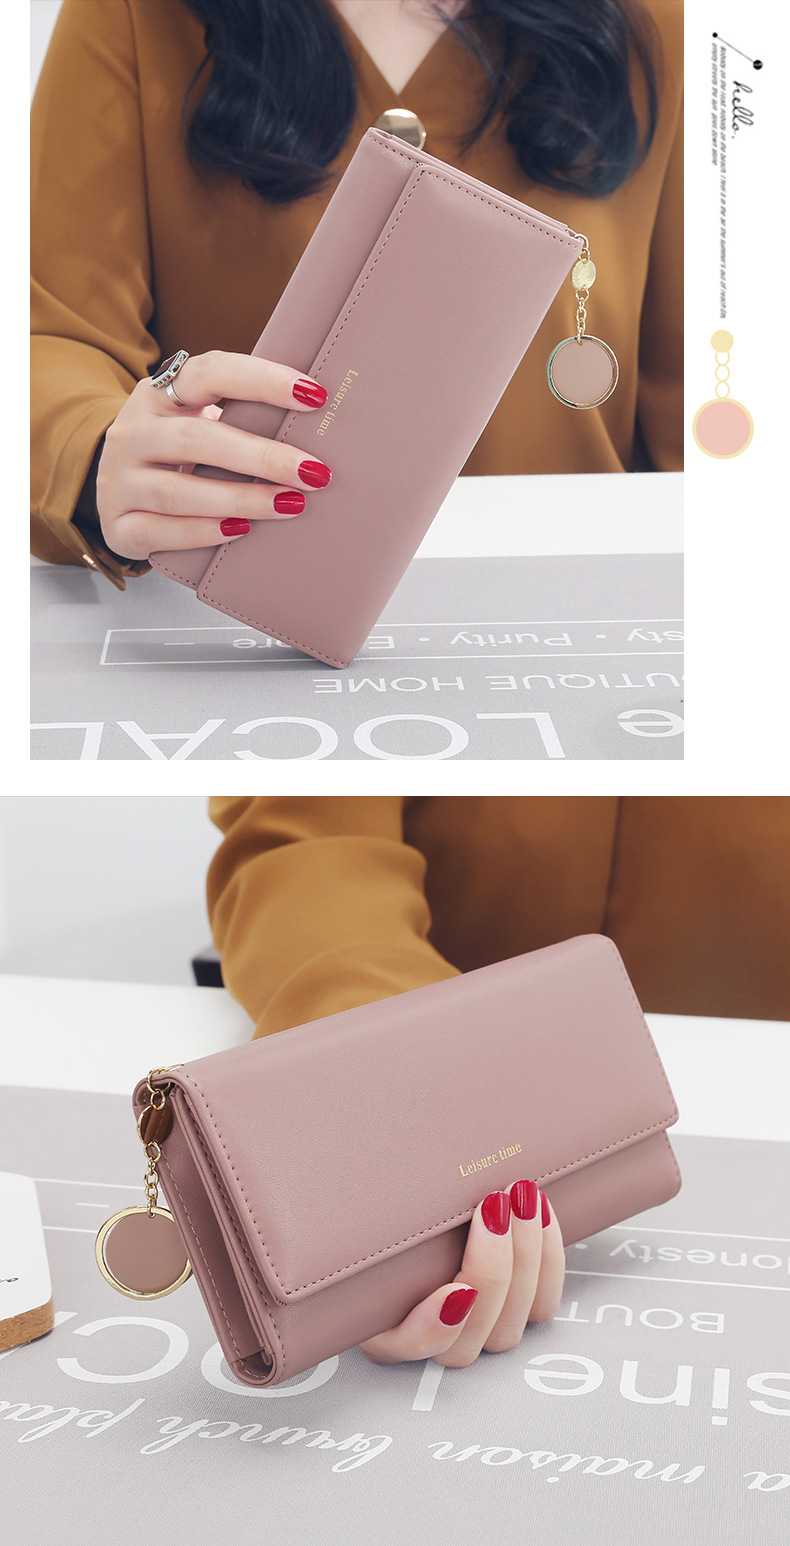 HTB14gkCXffsK1RjSszbq6AqBXXaO - New Fashion Women Wallets | Multi-functional